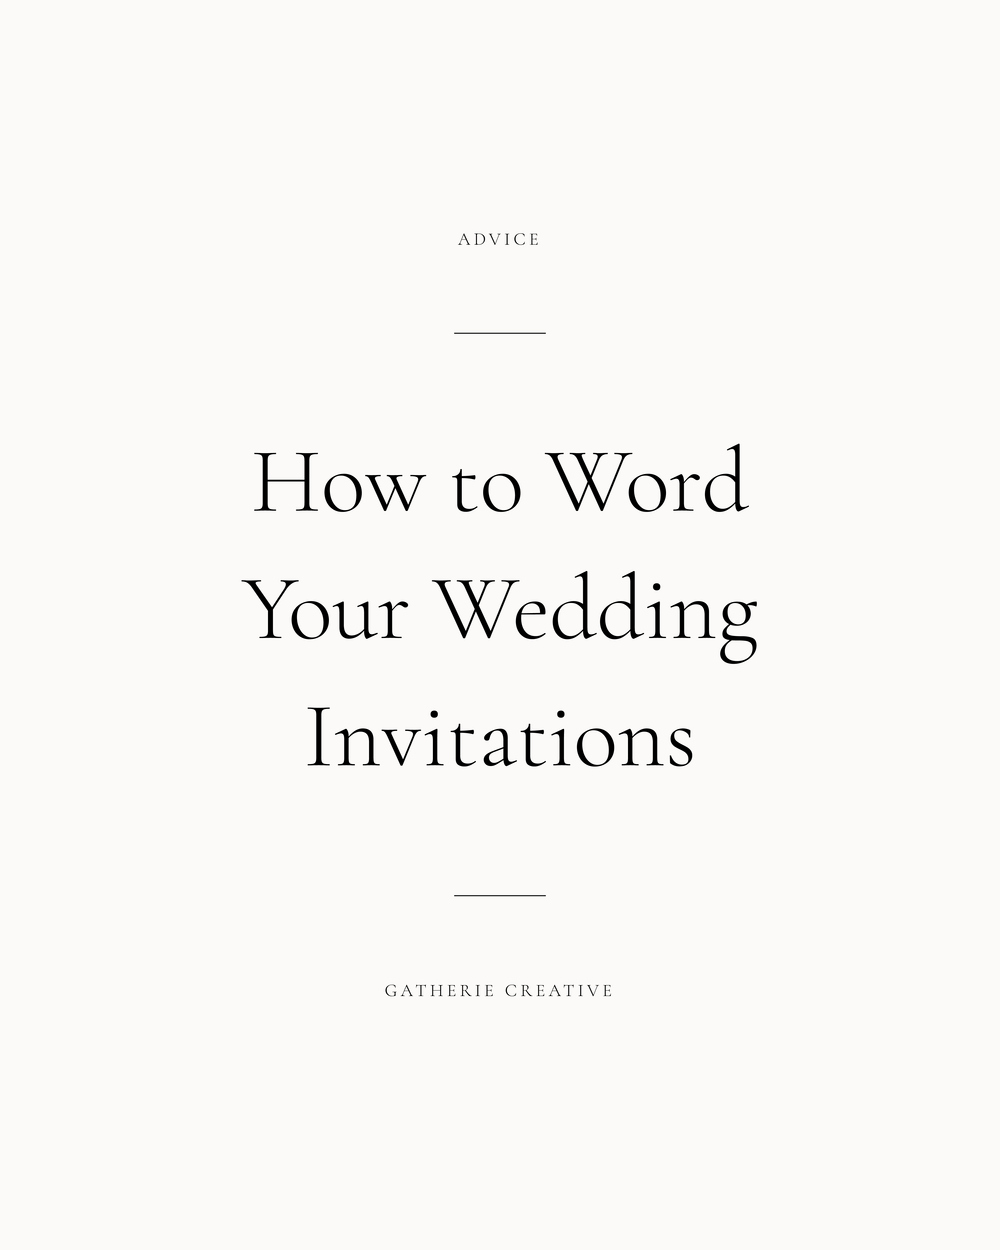 Proper Vietnamese Wedding Invitation format Elegant Gatherie Creative — Wedding Invitation Wording Etiquette